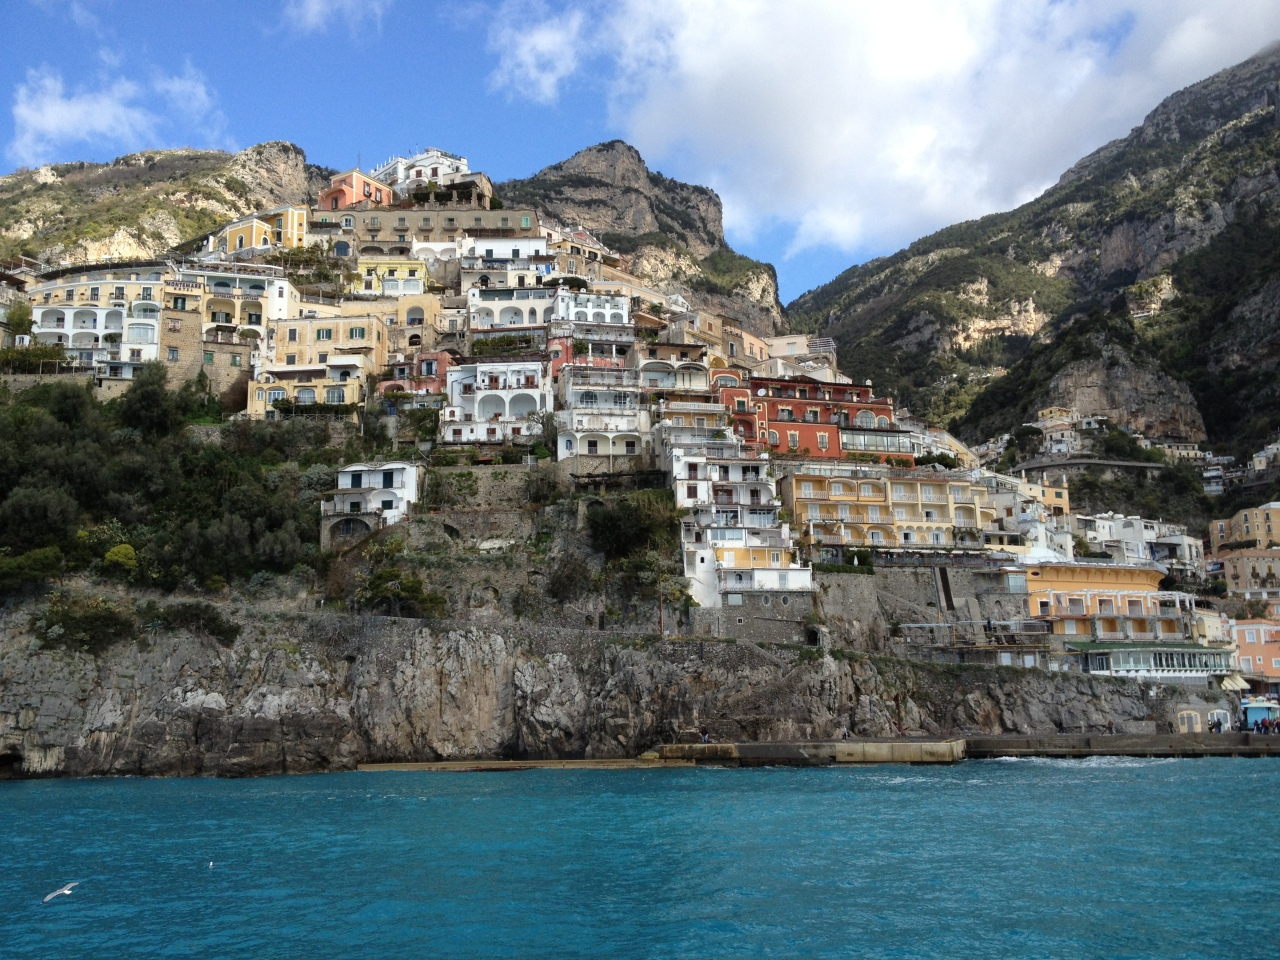 Italy: The Amalfi Coast